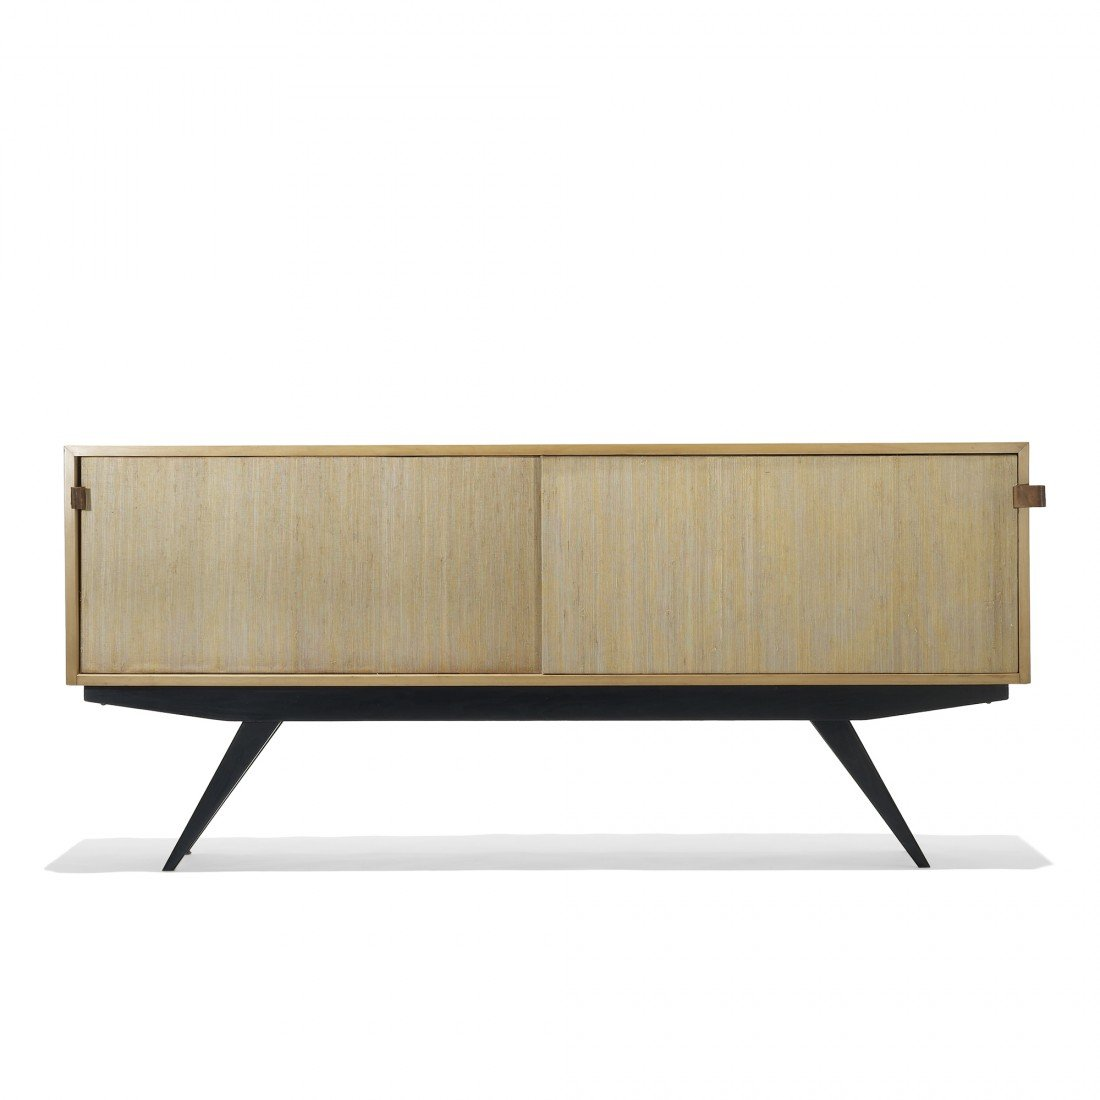 141: Florence Knoll cabinet, model 122